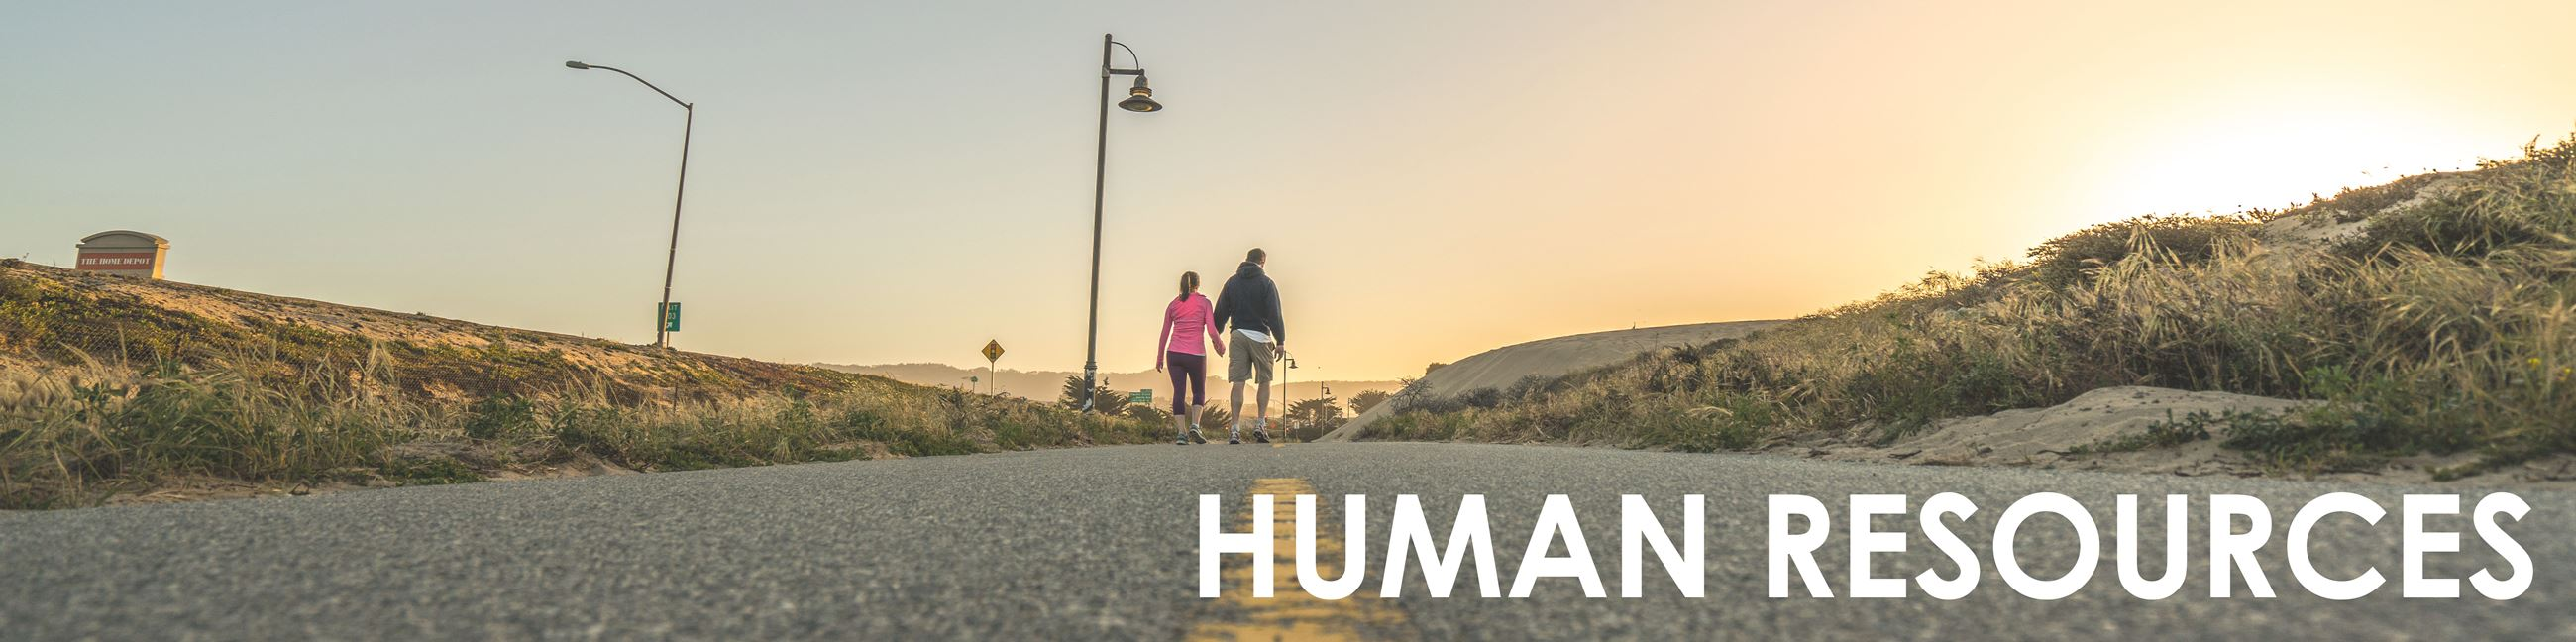 """Human Resources"" image of people walking on trail"